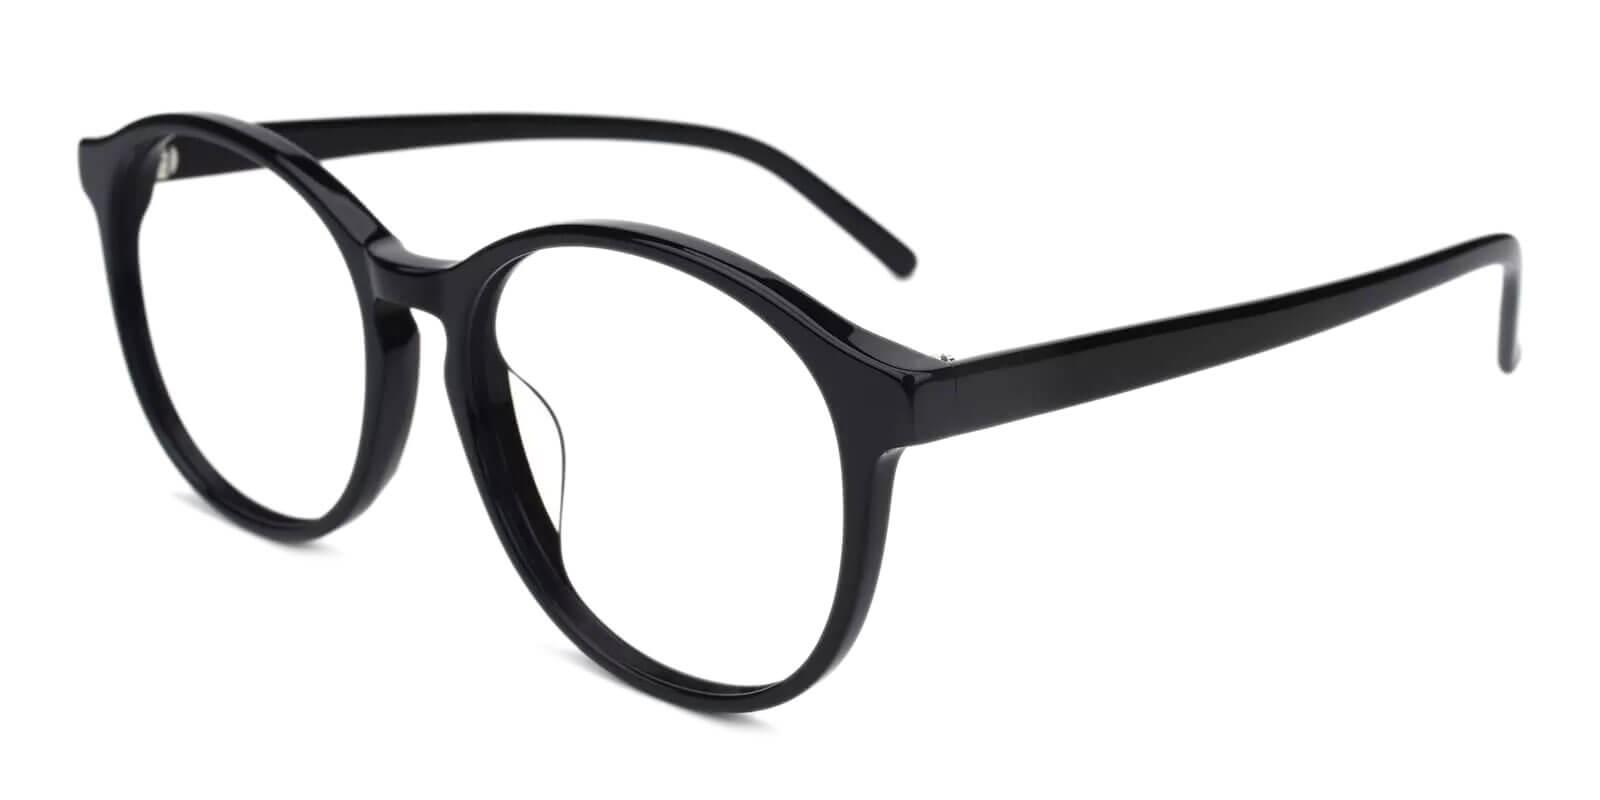 Wasco Black Acetate Eyeglasses , UniversalBridgeFit Frames from ABBE Glasses